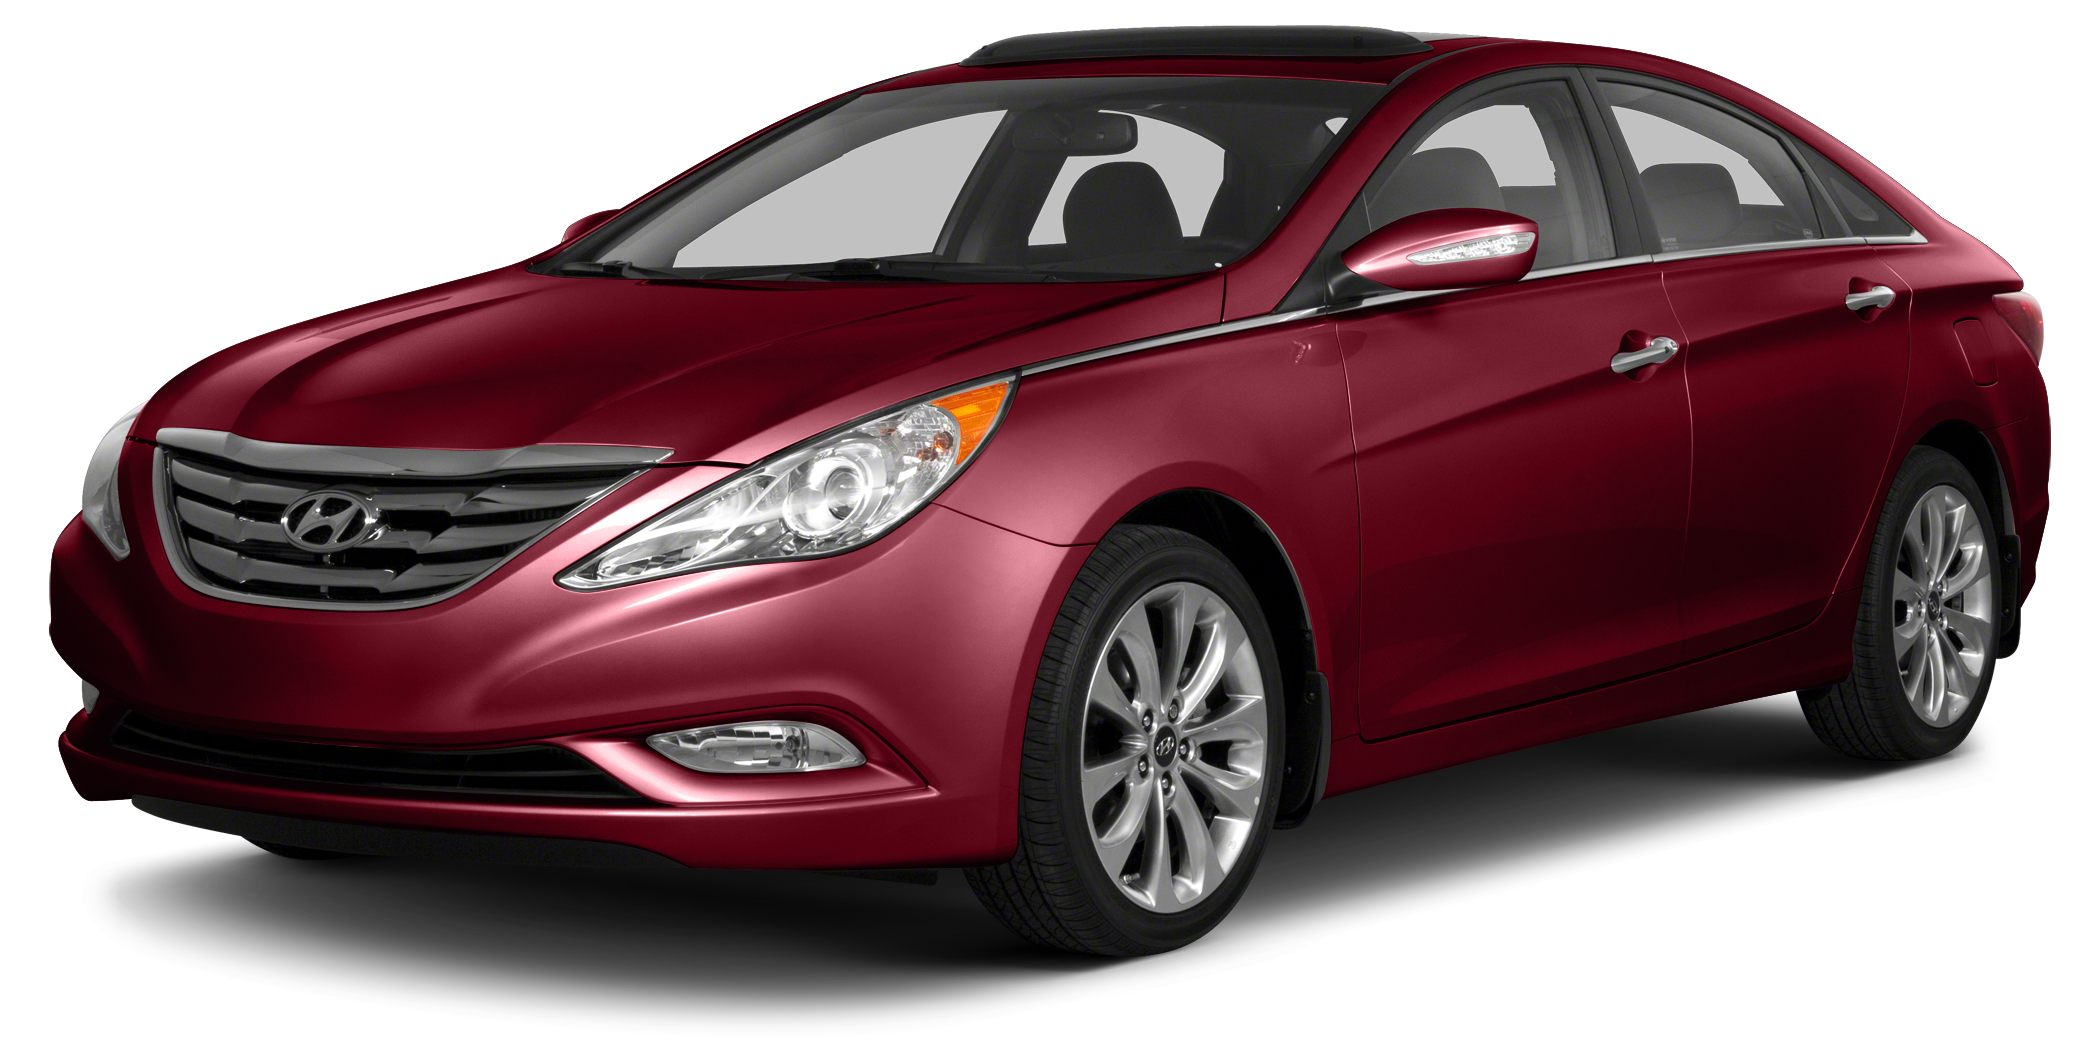 2013 Hyundai Sonata GLS Lifetime Engine Warranty at NO CHARGE on all pre-owned vehicles Courtesy